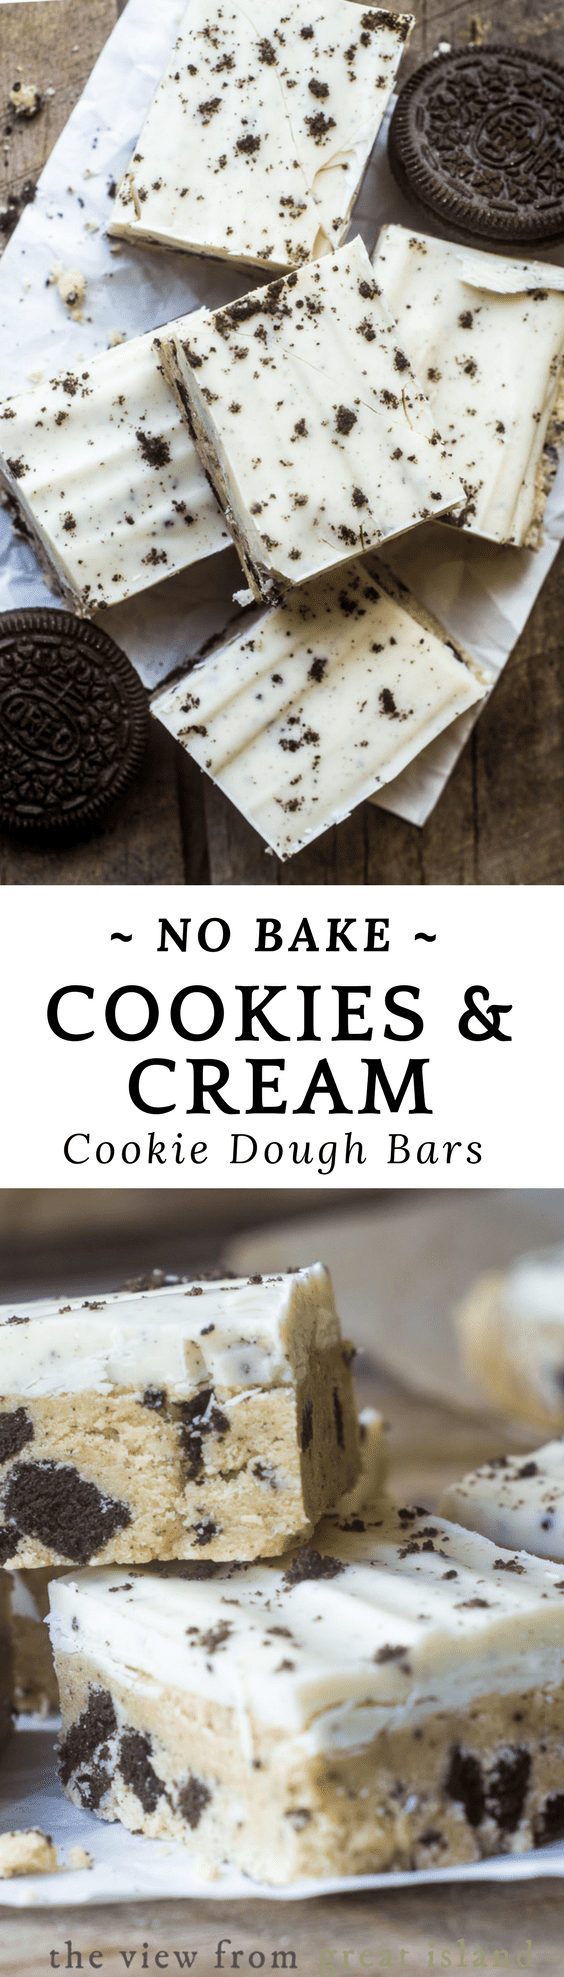 No Bake Cookies and Cream Cookie Dough Bars pin